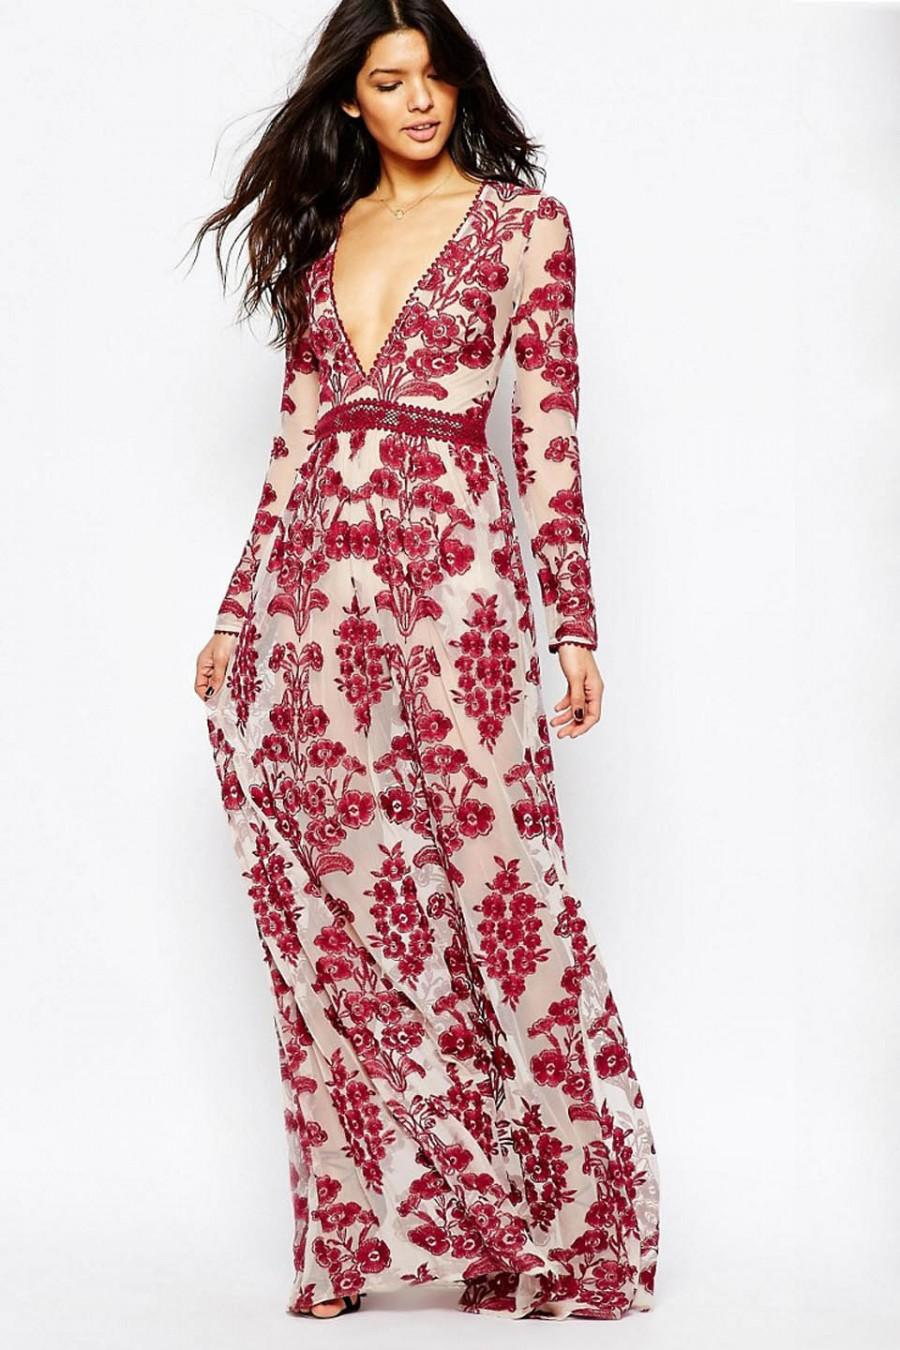 990a06a1a9a FOR LOVE   LEMONS TEMECULA MAXI DRESS IN RED  2578539 - Weddbook